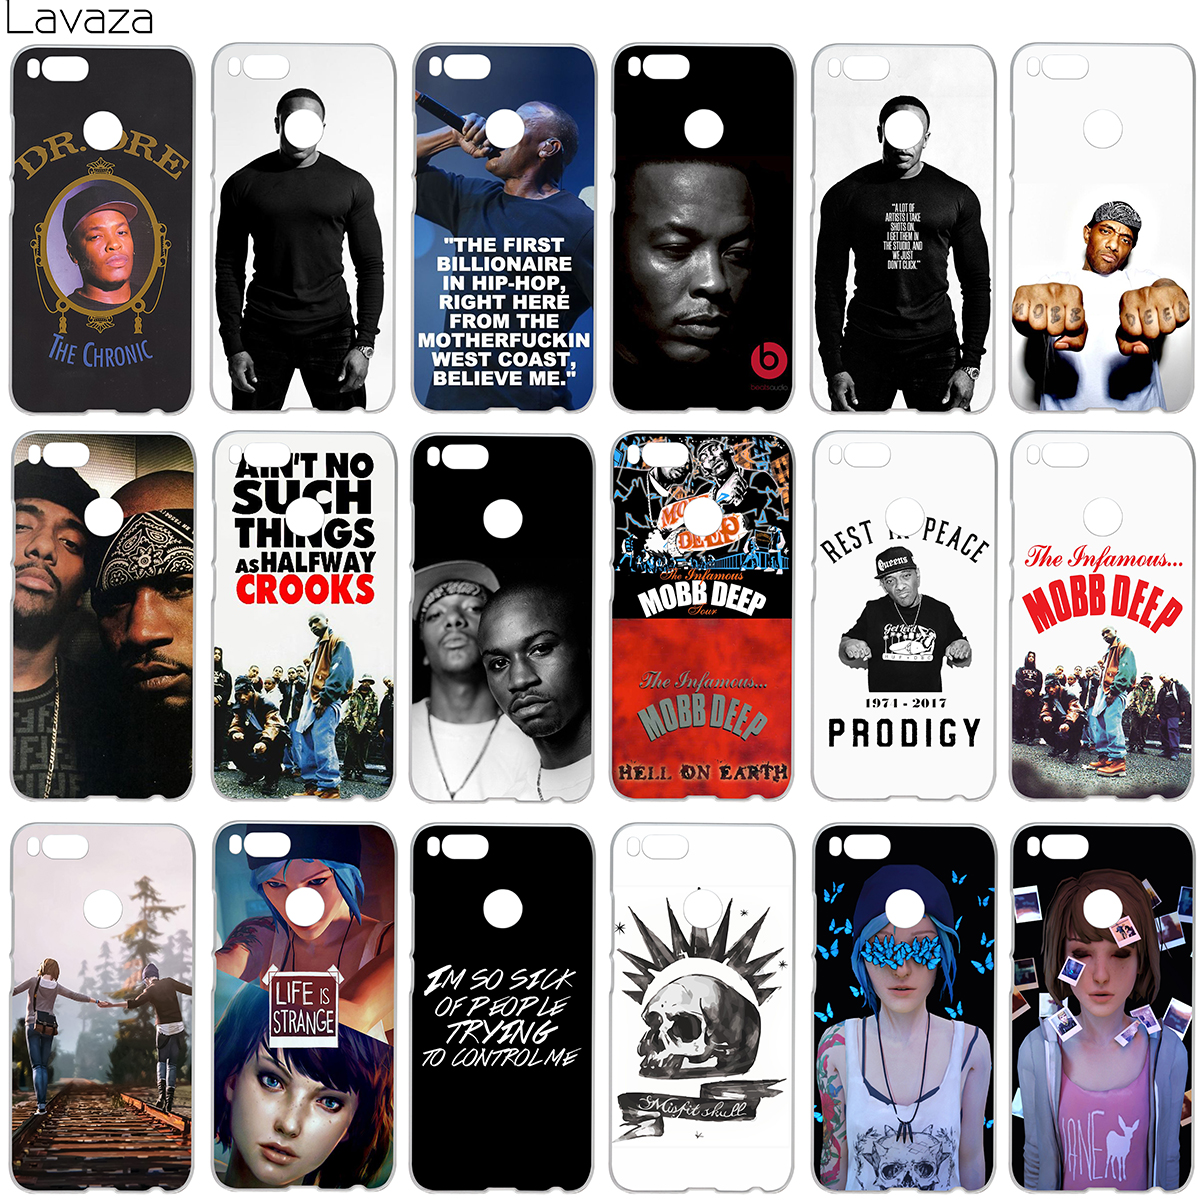 Lavaza Dr. Dre Mobb Deep Life Is Strange Case for Xiaomi Redmi Note 4X MI A1 4 5 6 Plus 4A MI6 Pro 5A ...